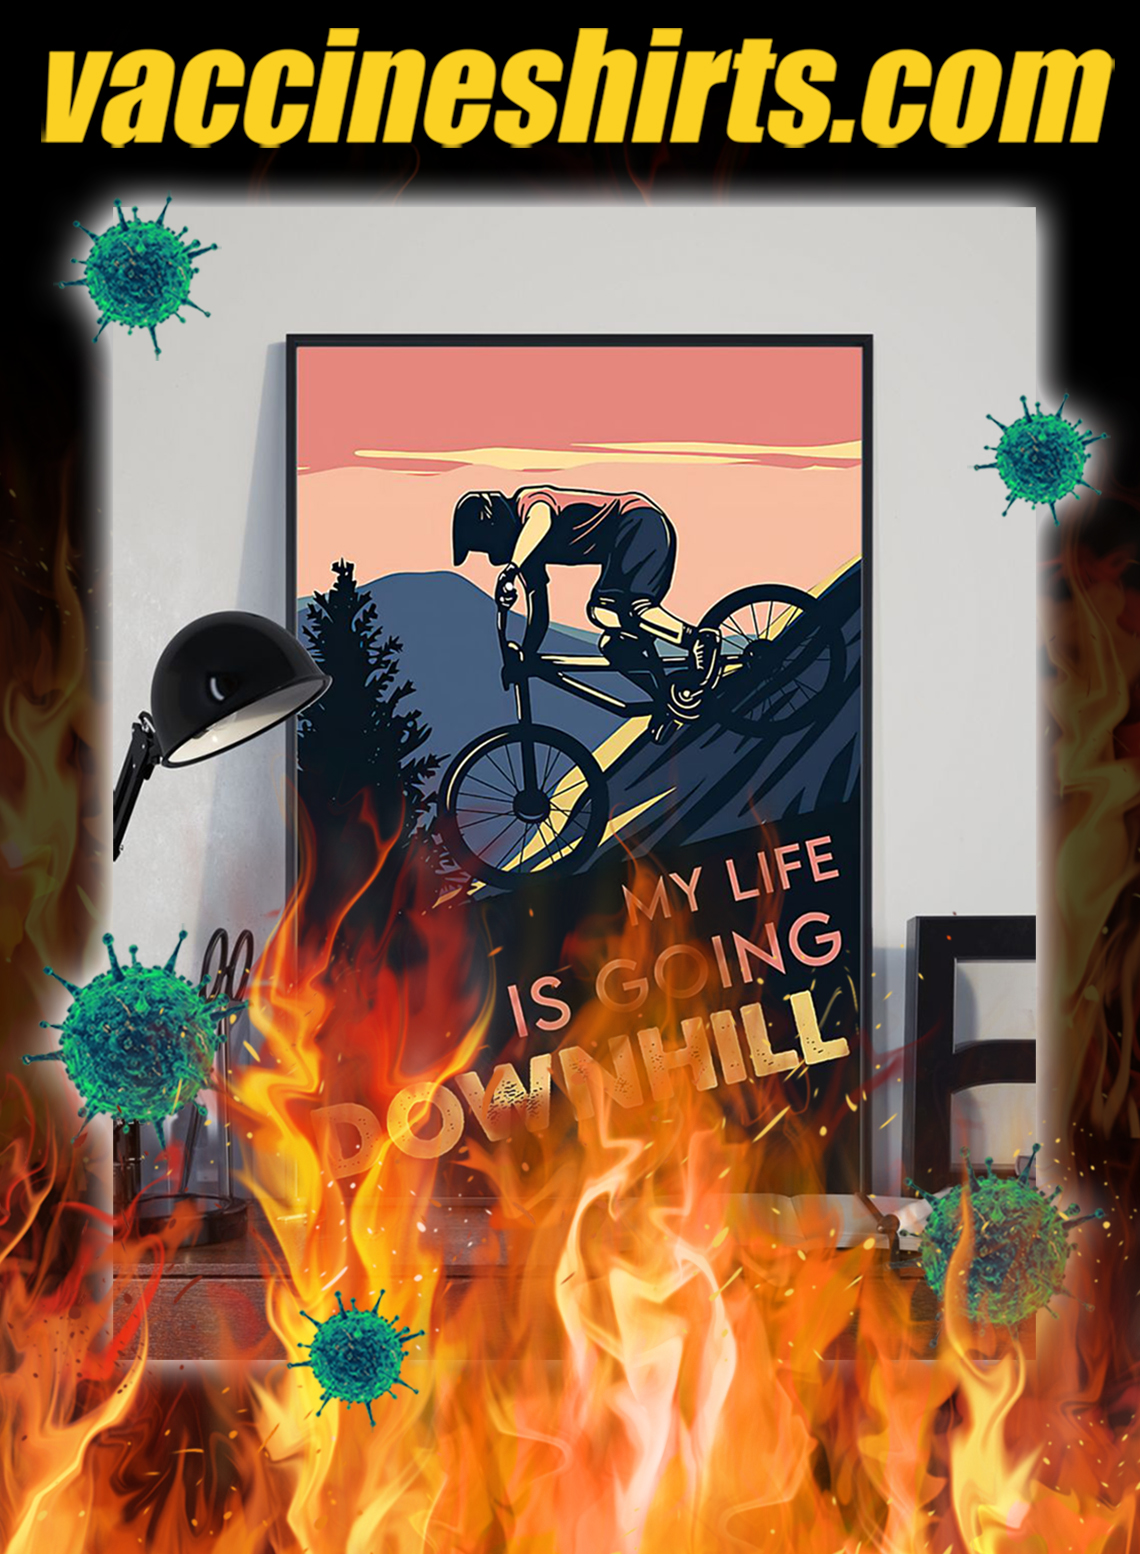 Cycling Downhill my life is going downhill poster- A1